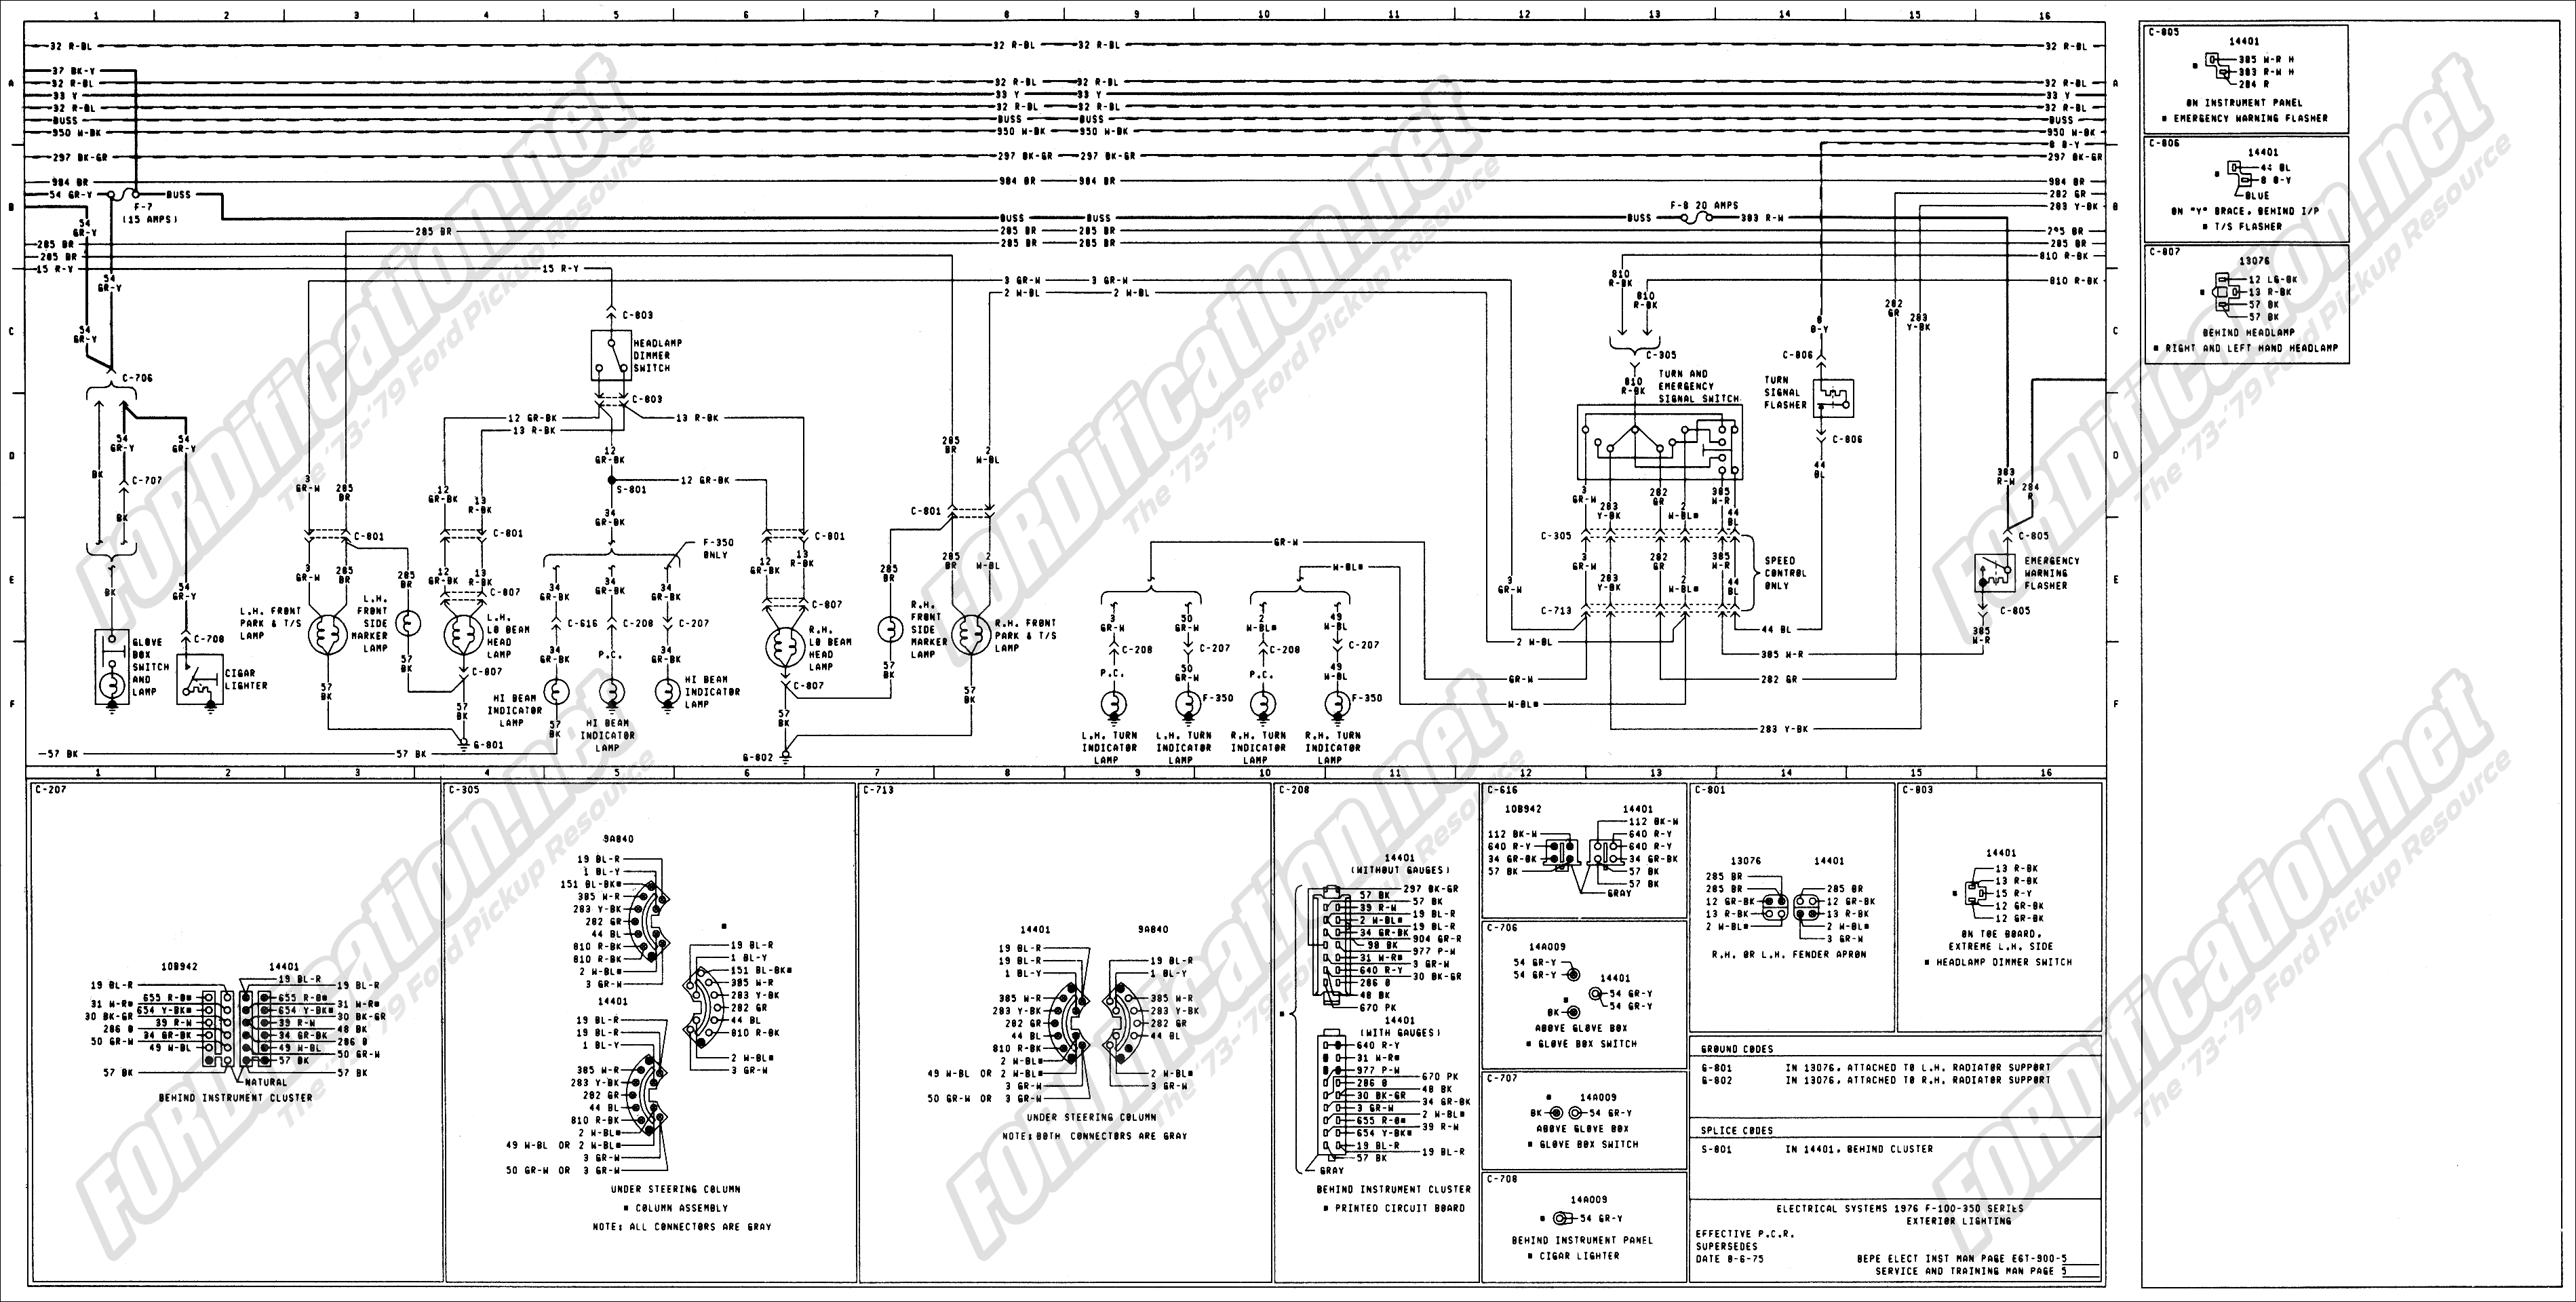 wiring_76master_5of9 1973 1979 ford truck wiring diagrams & schematics fordification net  at webbmarketing.co